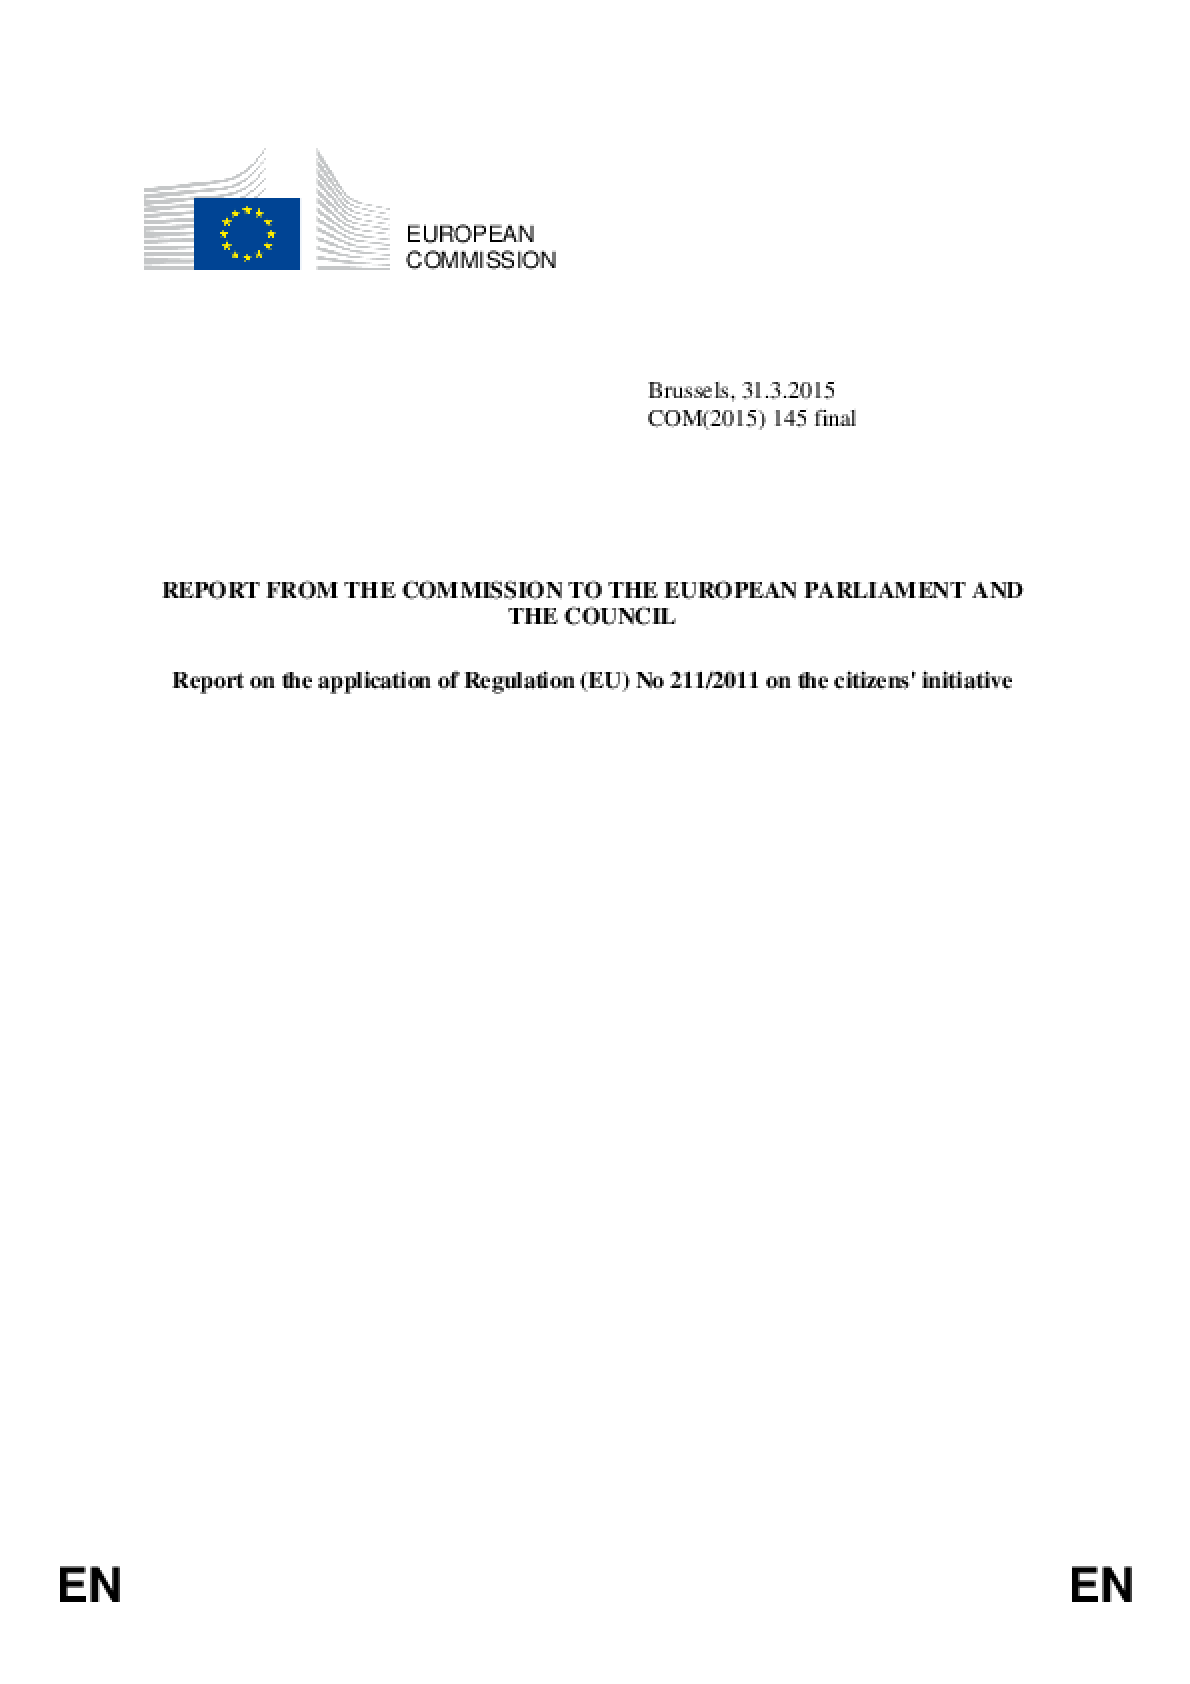 Report from the Commission to the European Parliament and the Council - Report on the Application of Regulation (EU) No 211/2011 on the Citizens' Initiative